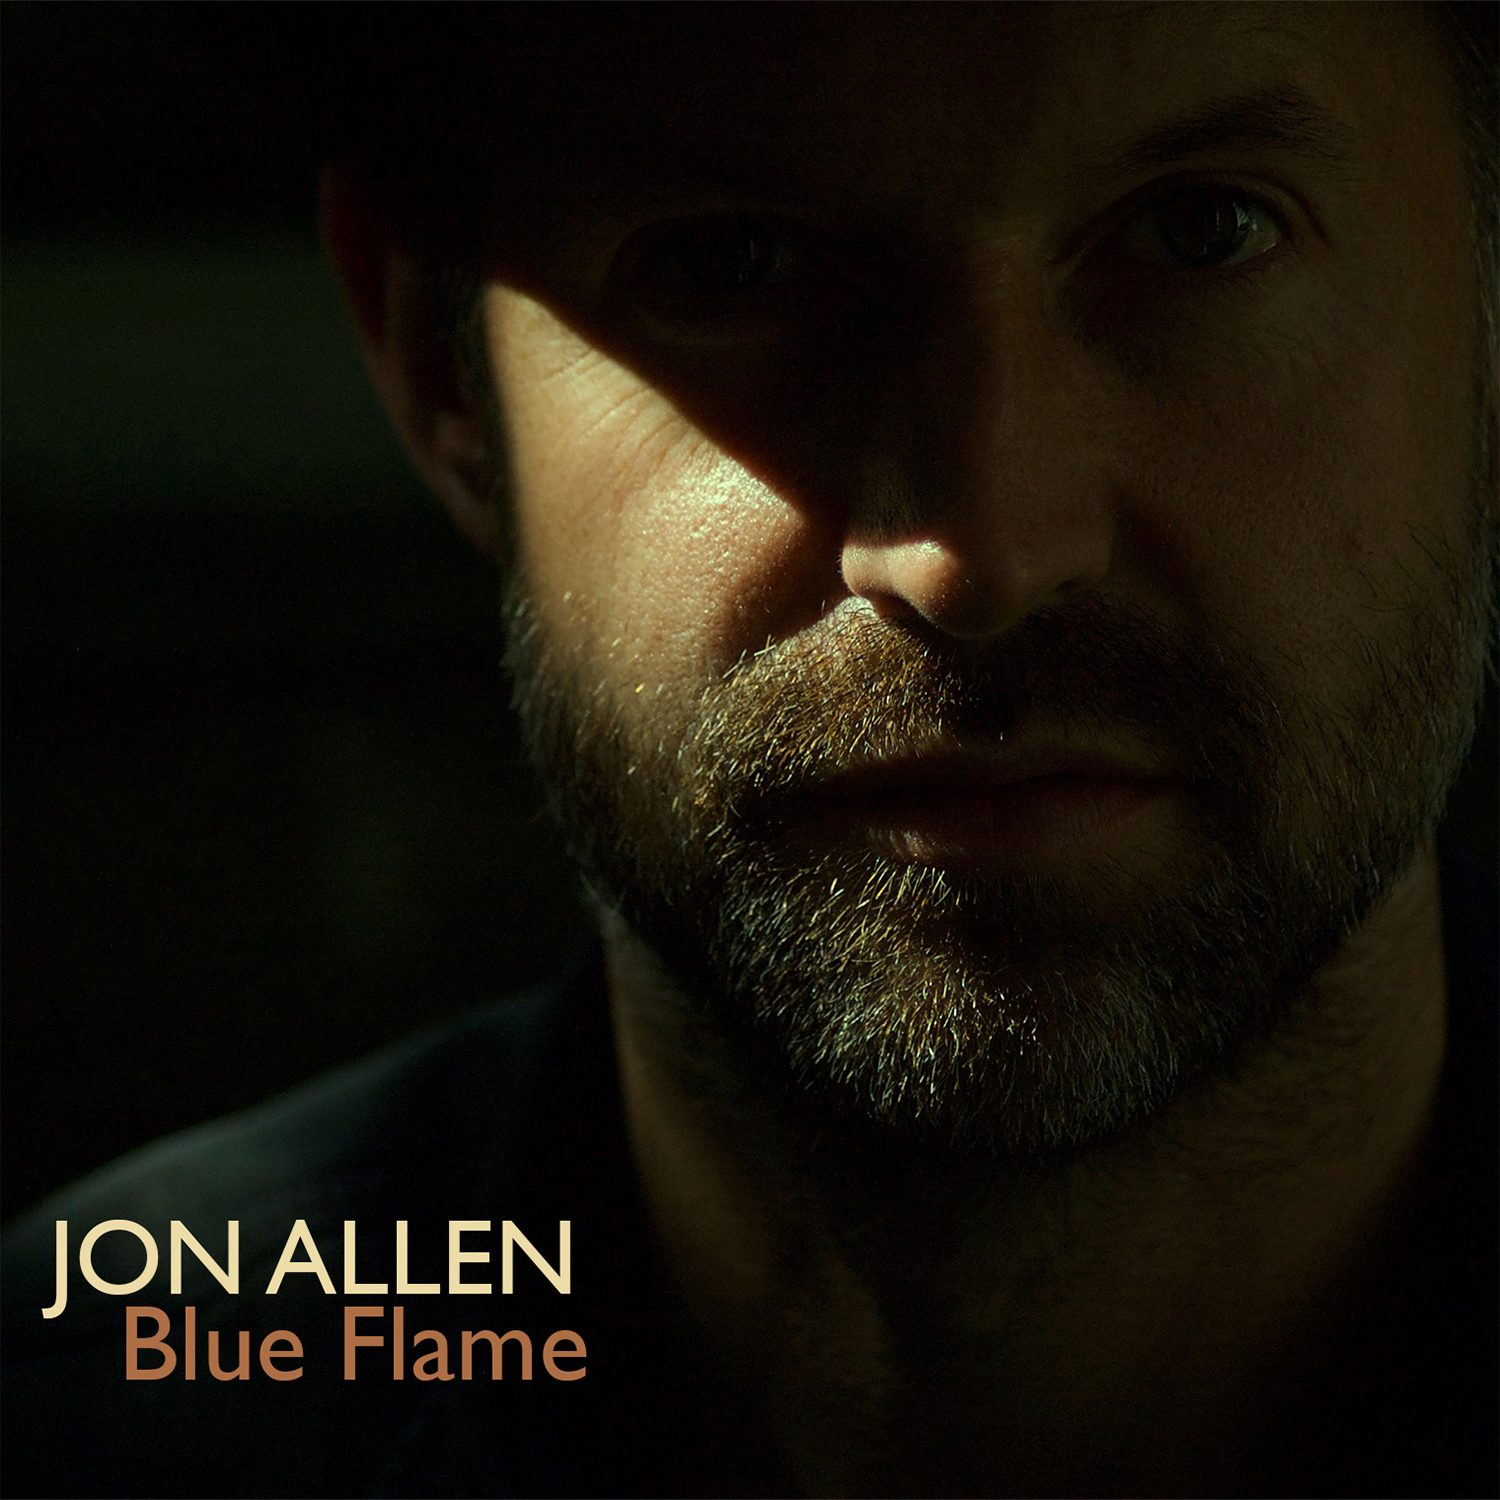 jon allen blue flame jonah's whale studio album ok good records singer songwriter